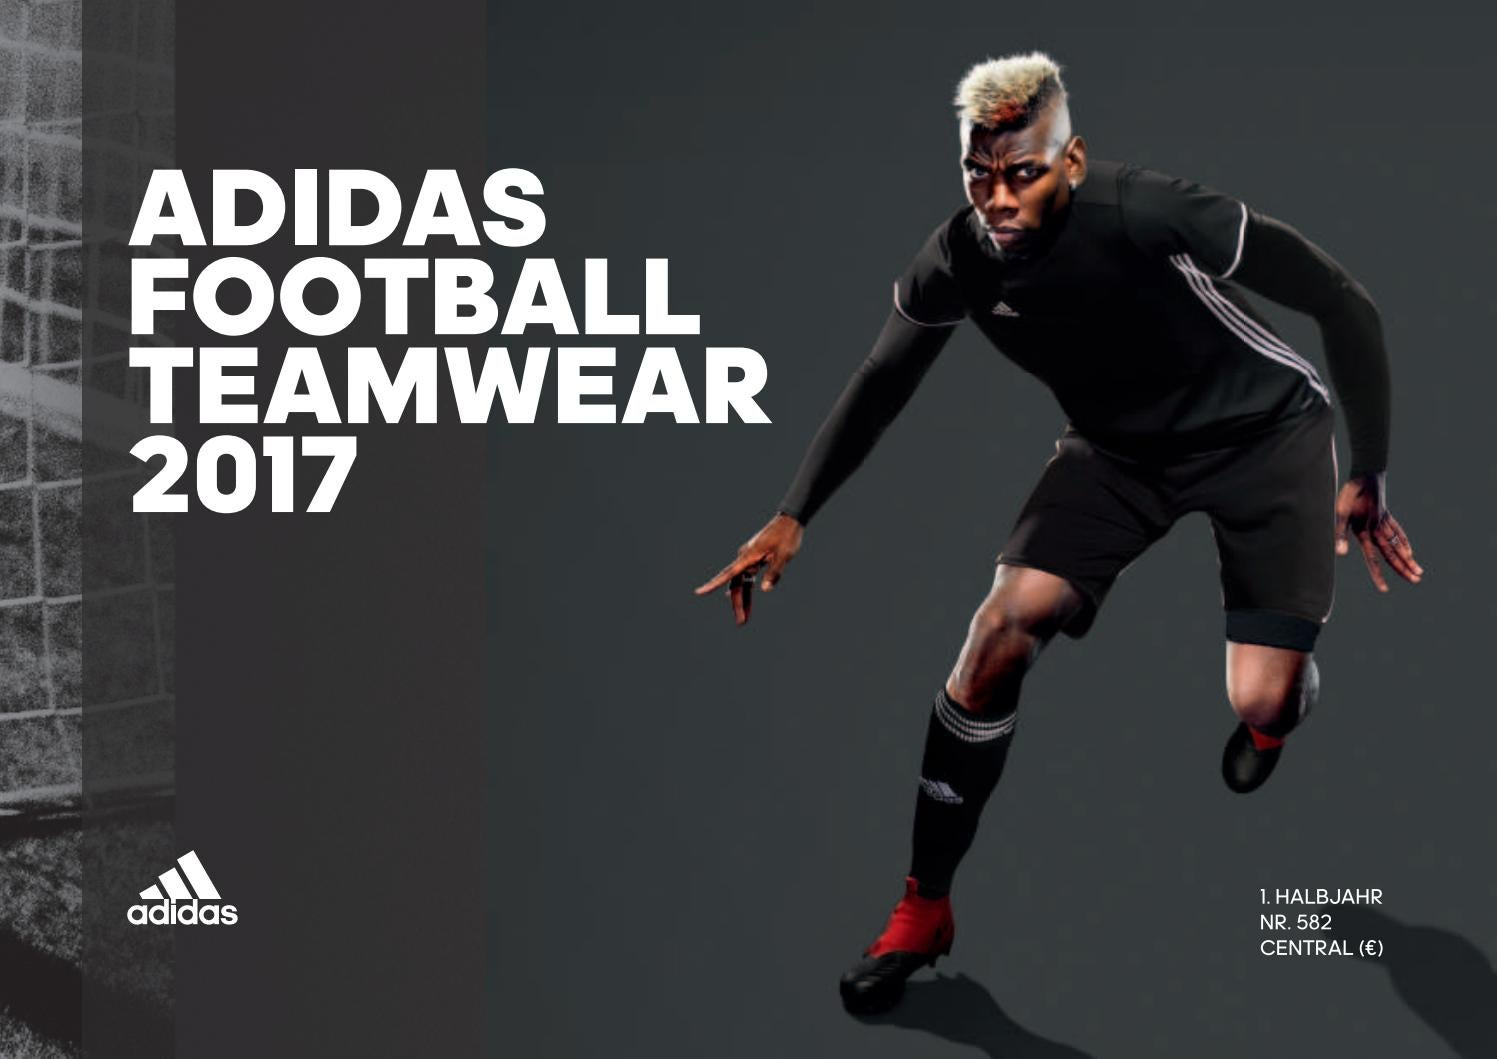 2fc5033206 Adidas Teamsport Katalog 2017 2018 by Hofbauer Teamsport Simbach - issuu